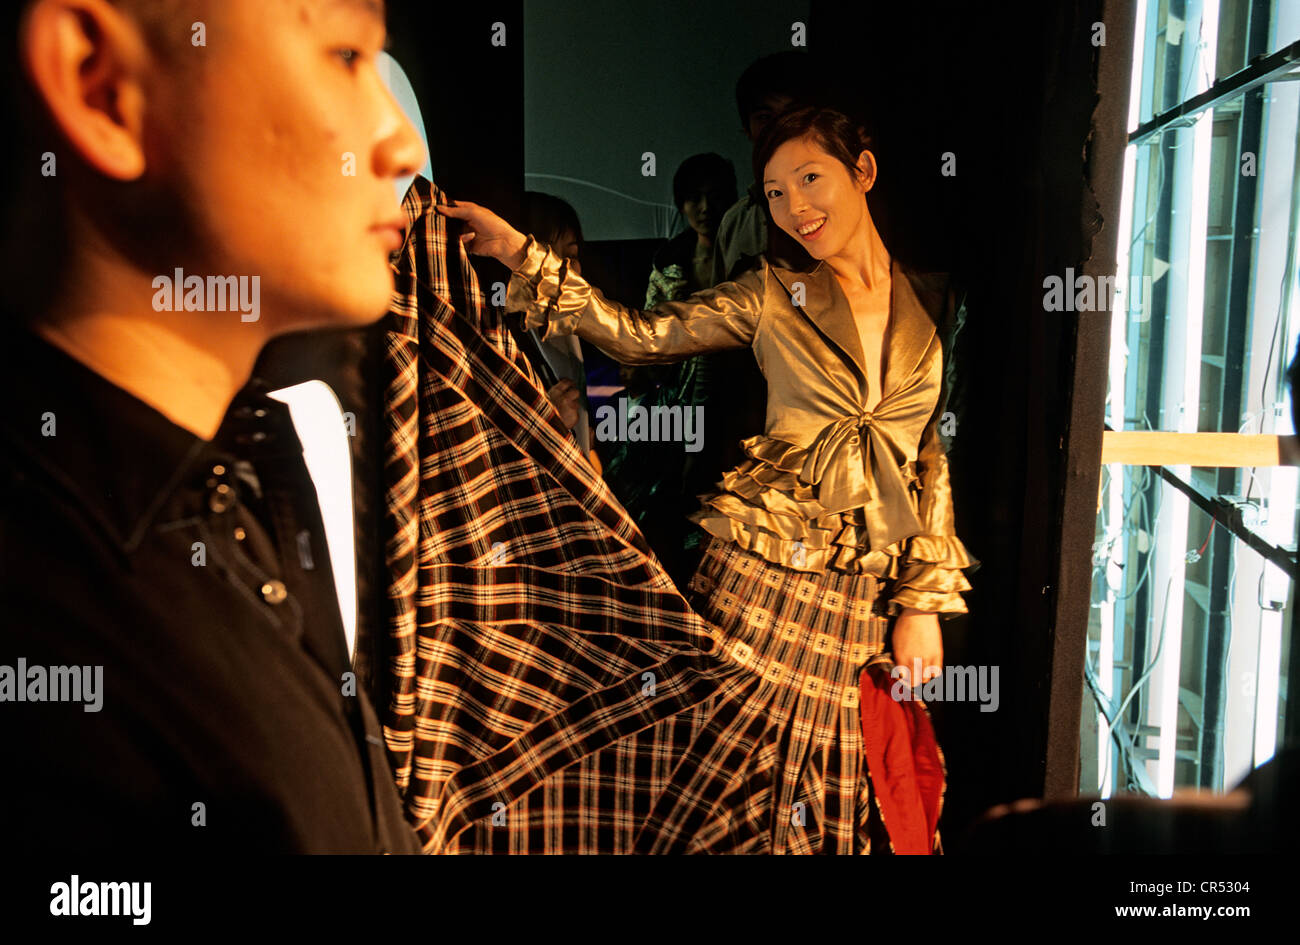 China, Shanghai, Lu Kun, fashion designer, Nokia fashion parade - Stock Image